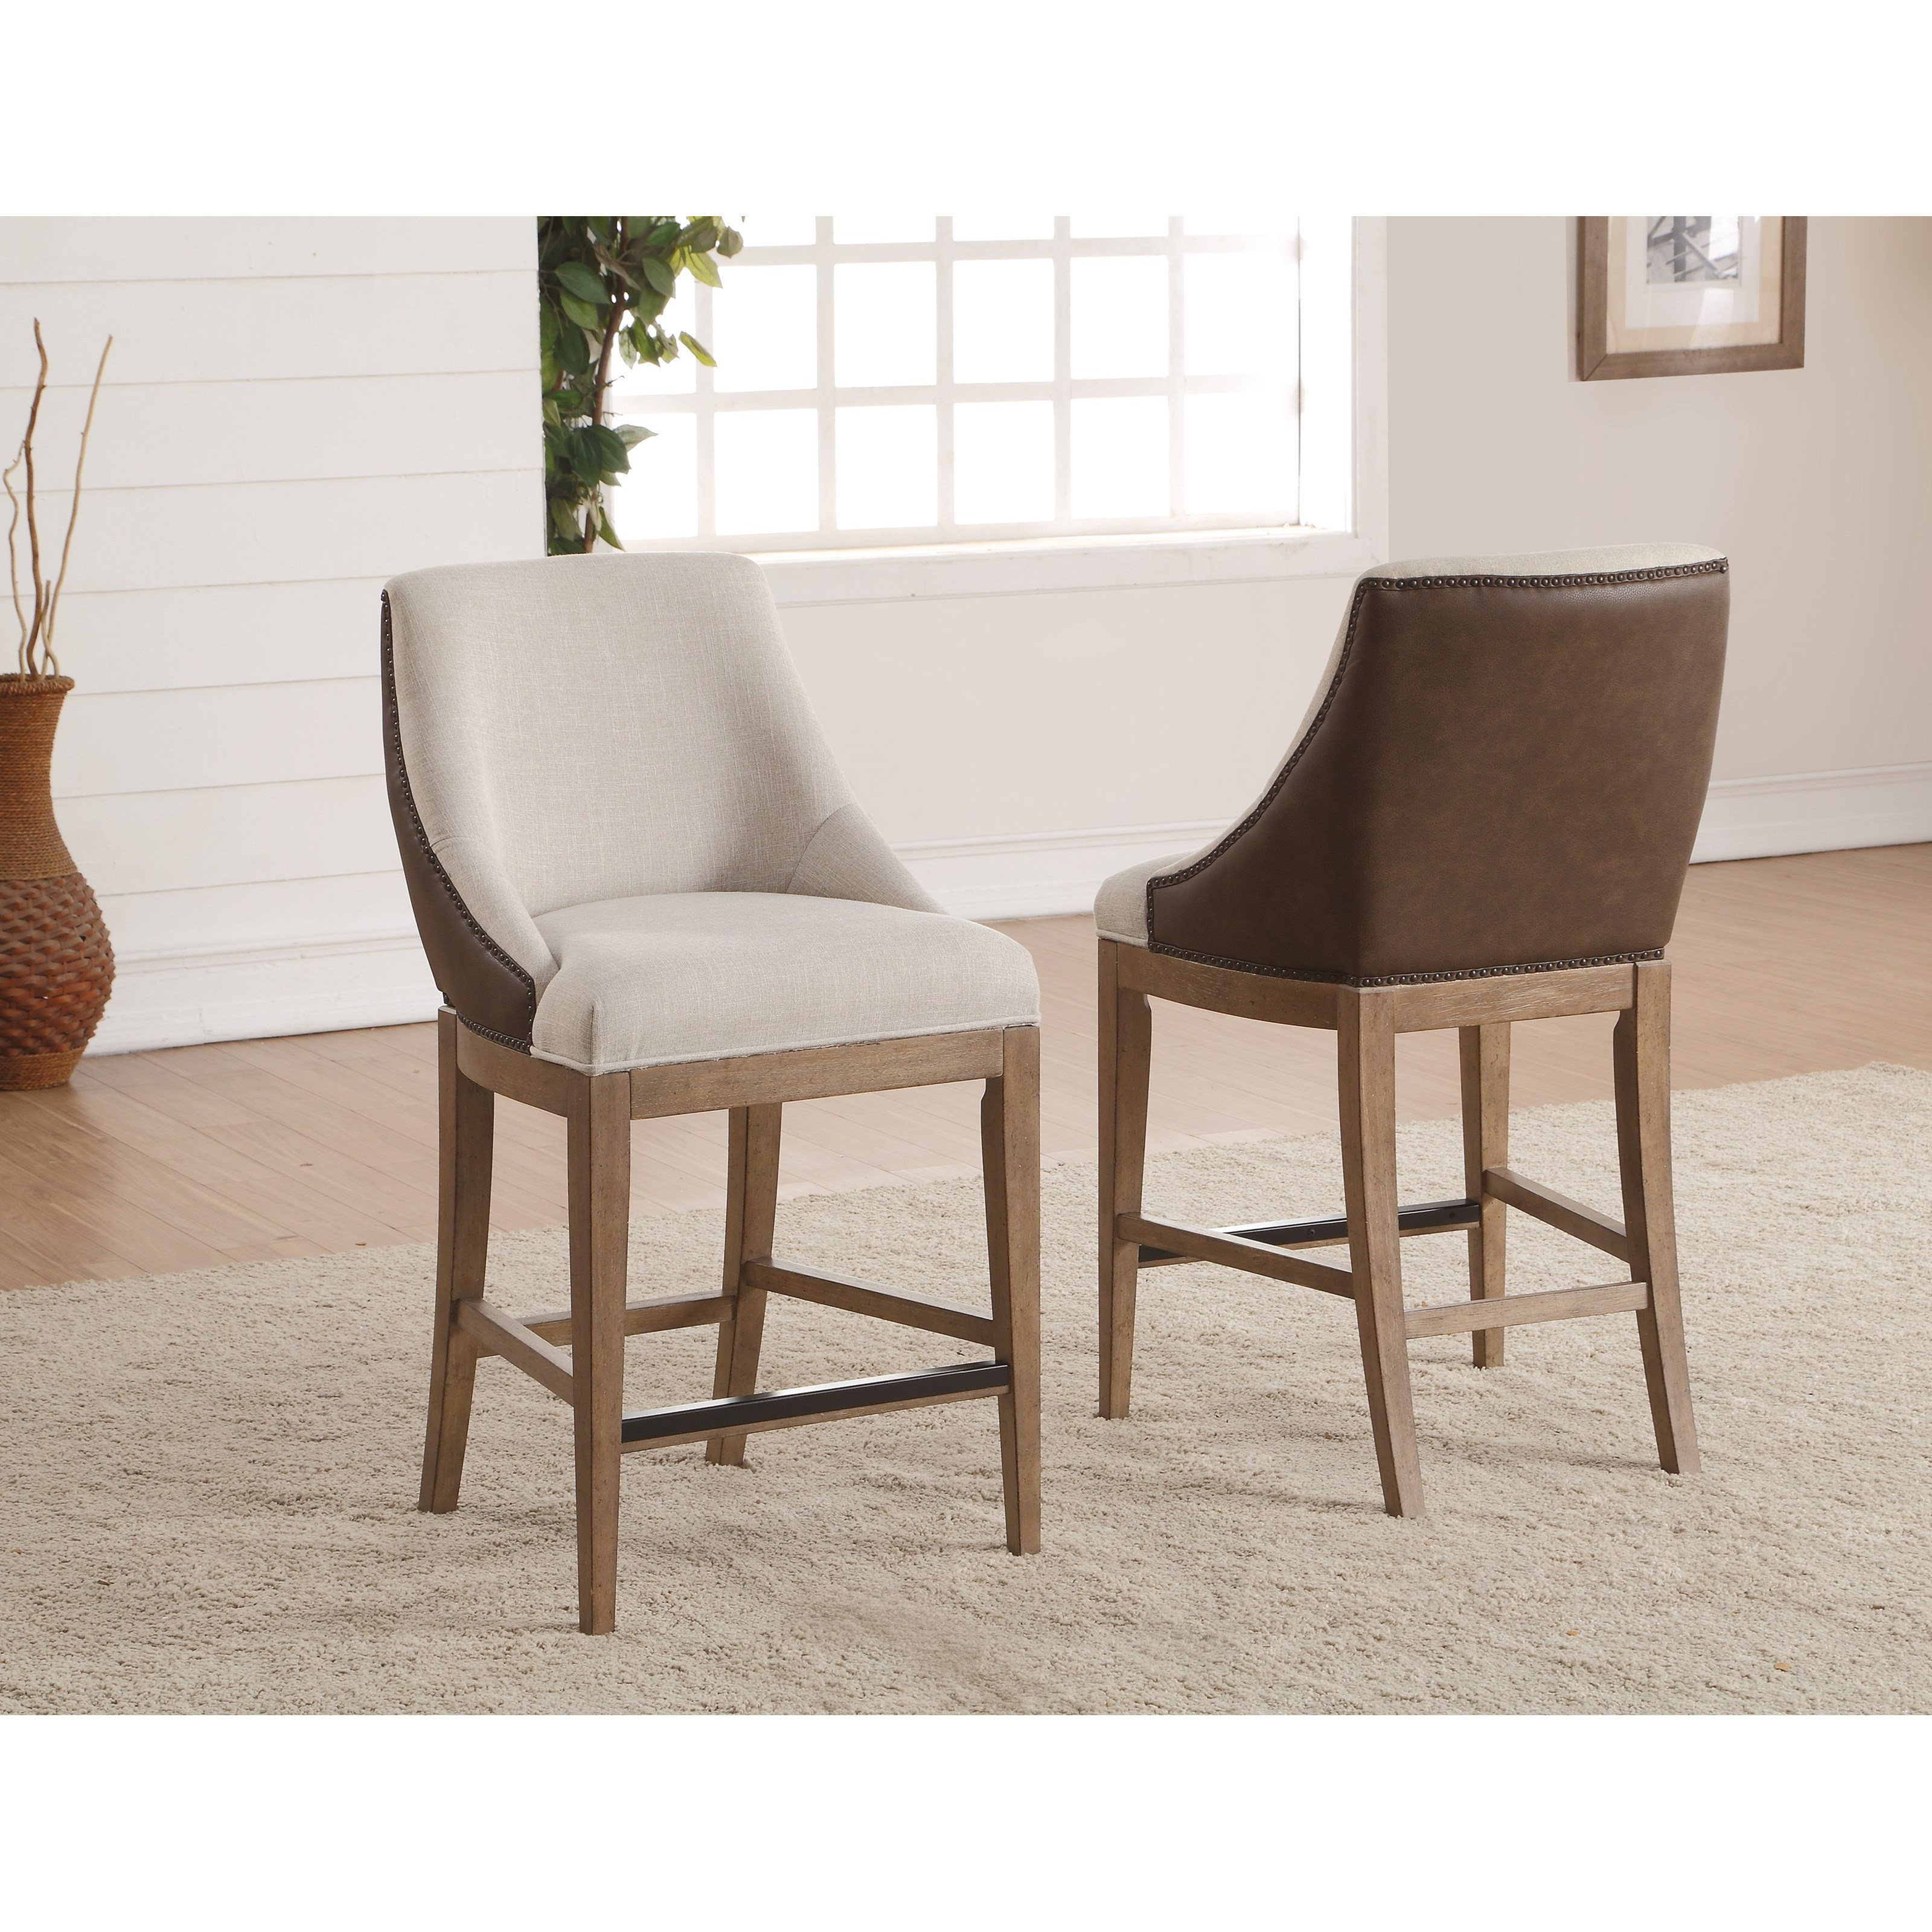 upholstered counter height chairs ergonomic office uk flexsteel wynwood collection carmen transitional chair